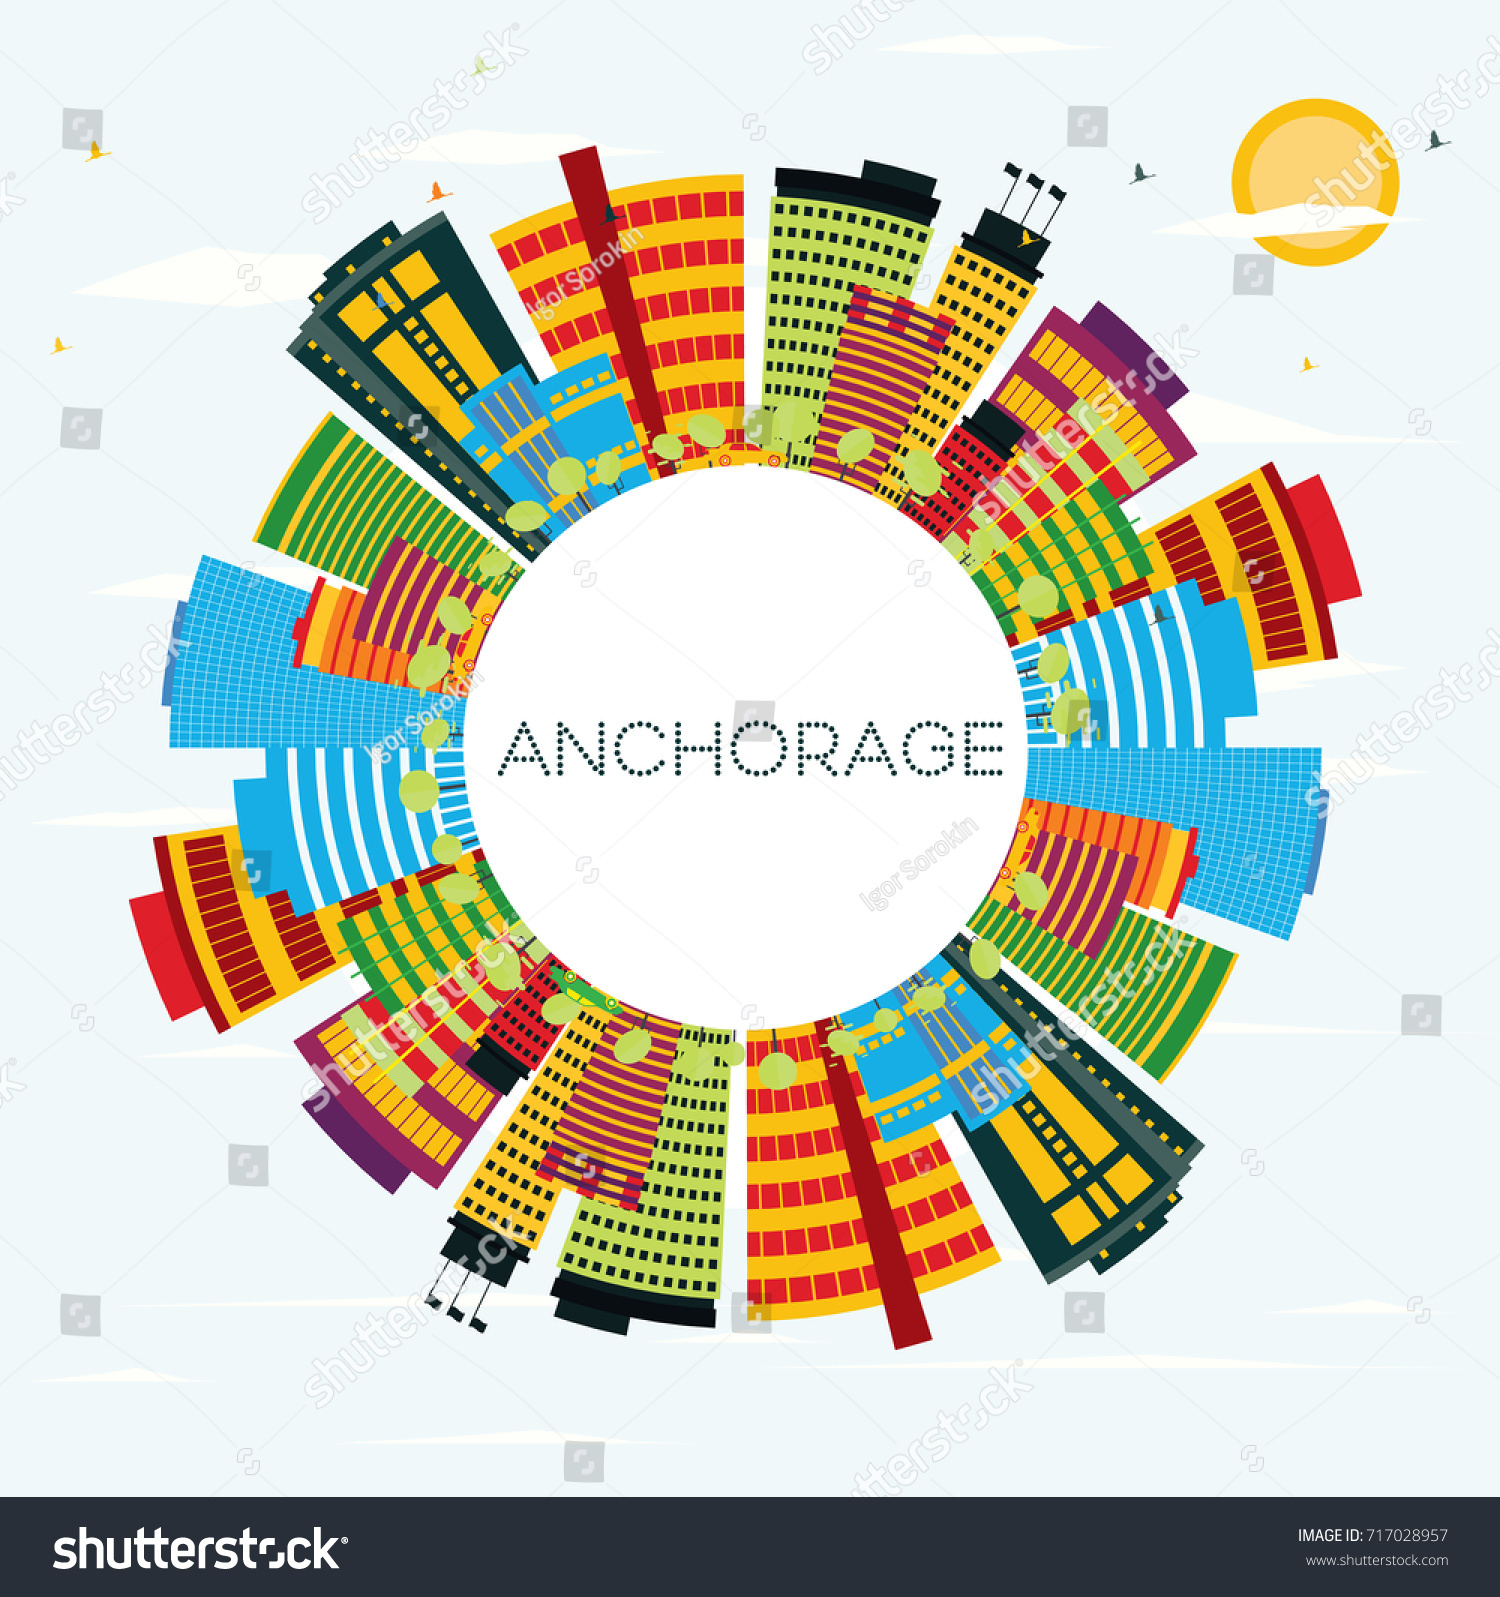 Color art anchorage - Anchorage Skyline With Color Buildings Blue Sky And Copy Space Business Travel And Tourism